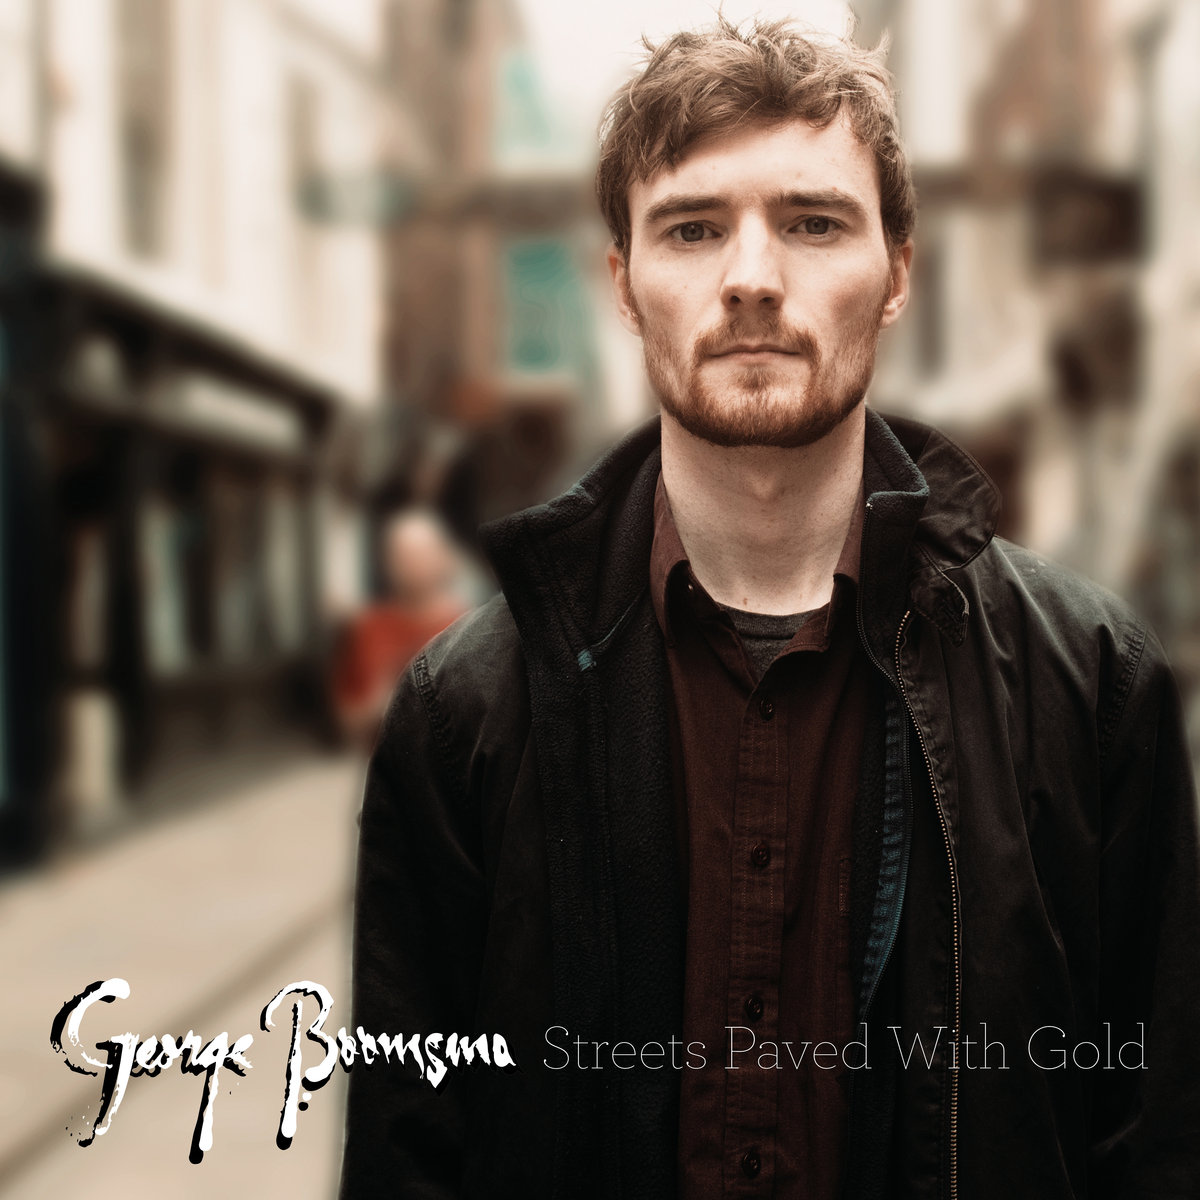 Artist:   George Boomsma    Title:  Streets Paved With Gold (Single)   Credit:  Mastering   Year:  2017